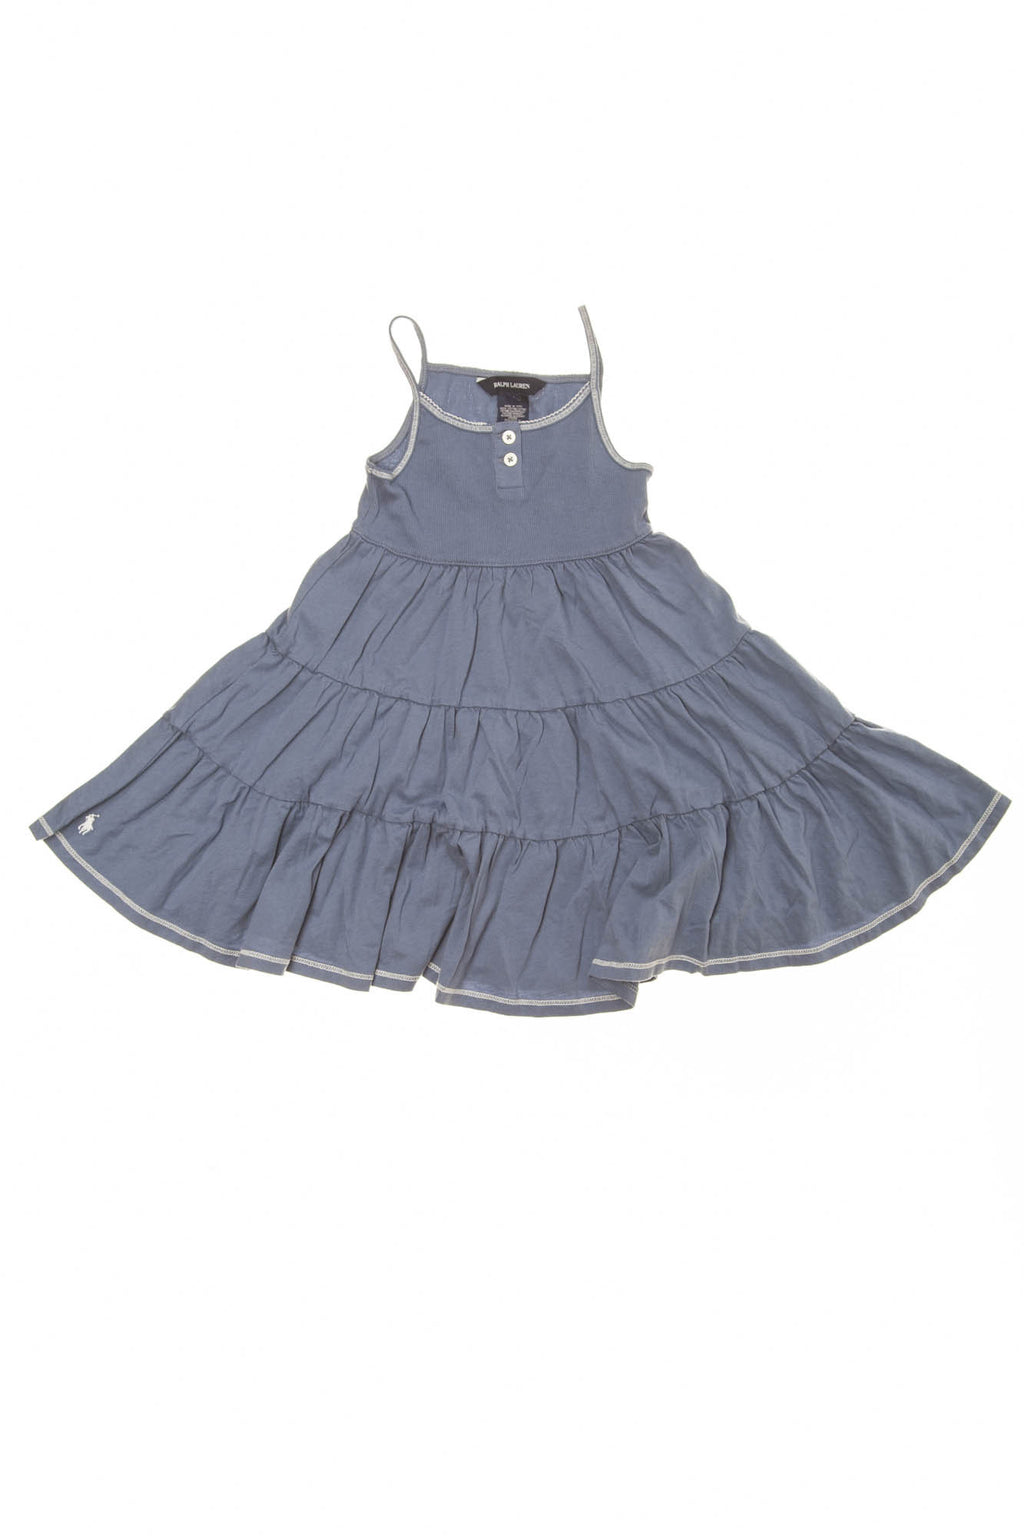 Ralph Lauren - Blue Spaghetti Strap Dress -